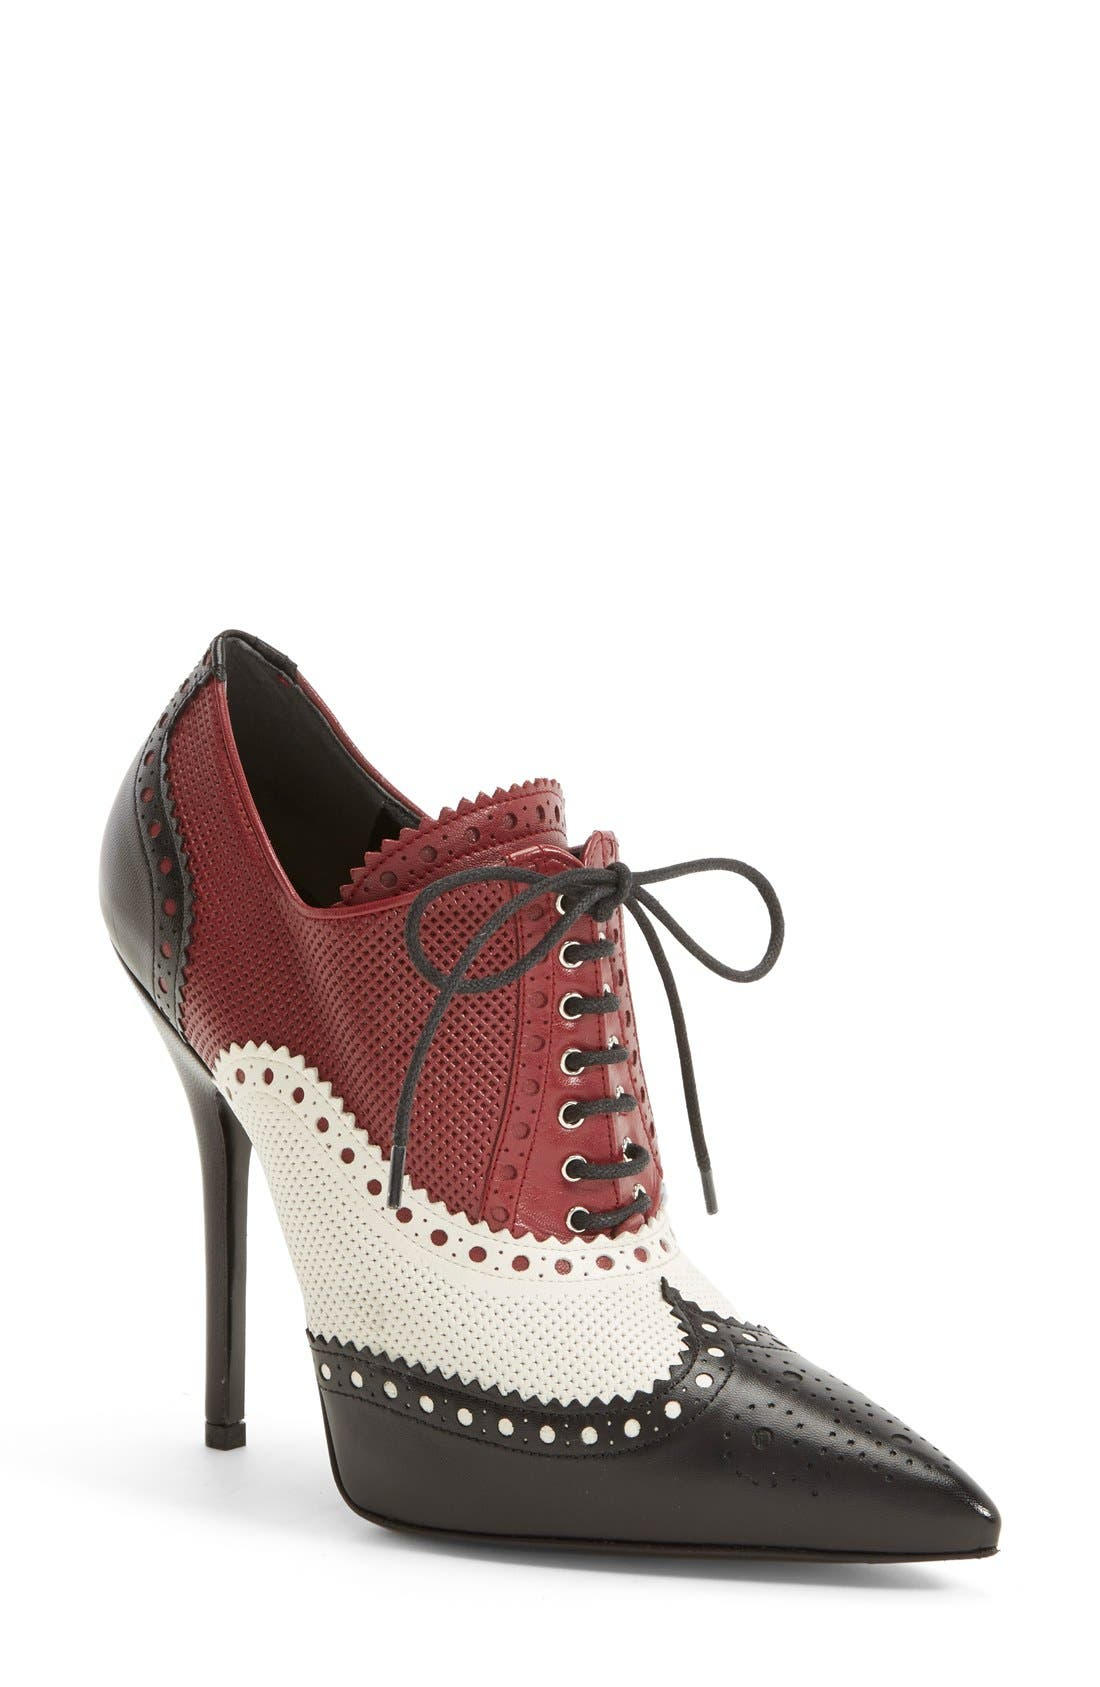 Alternate Image 1 Selected - Gucci 'Gia' Pointy Toe Bootie (Women)